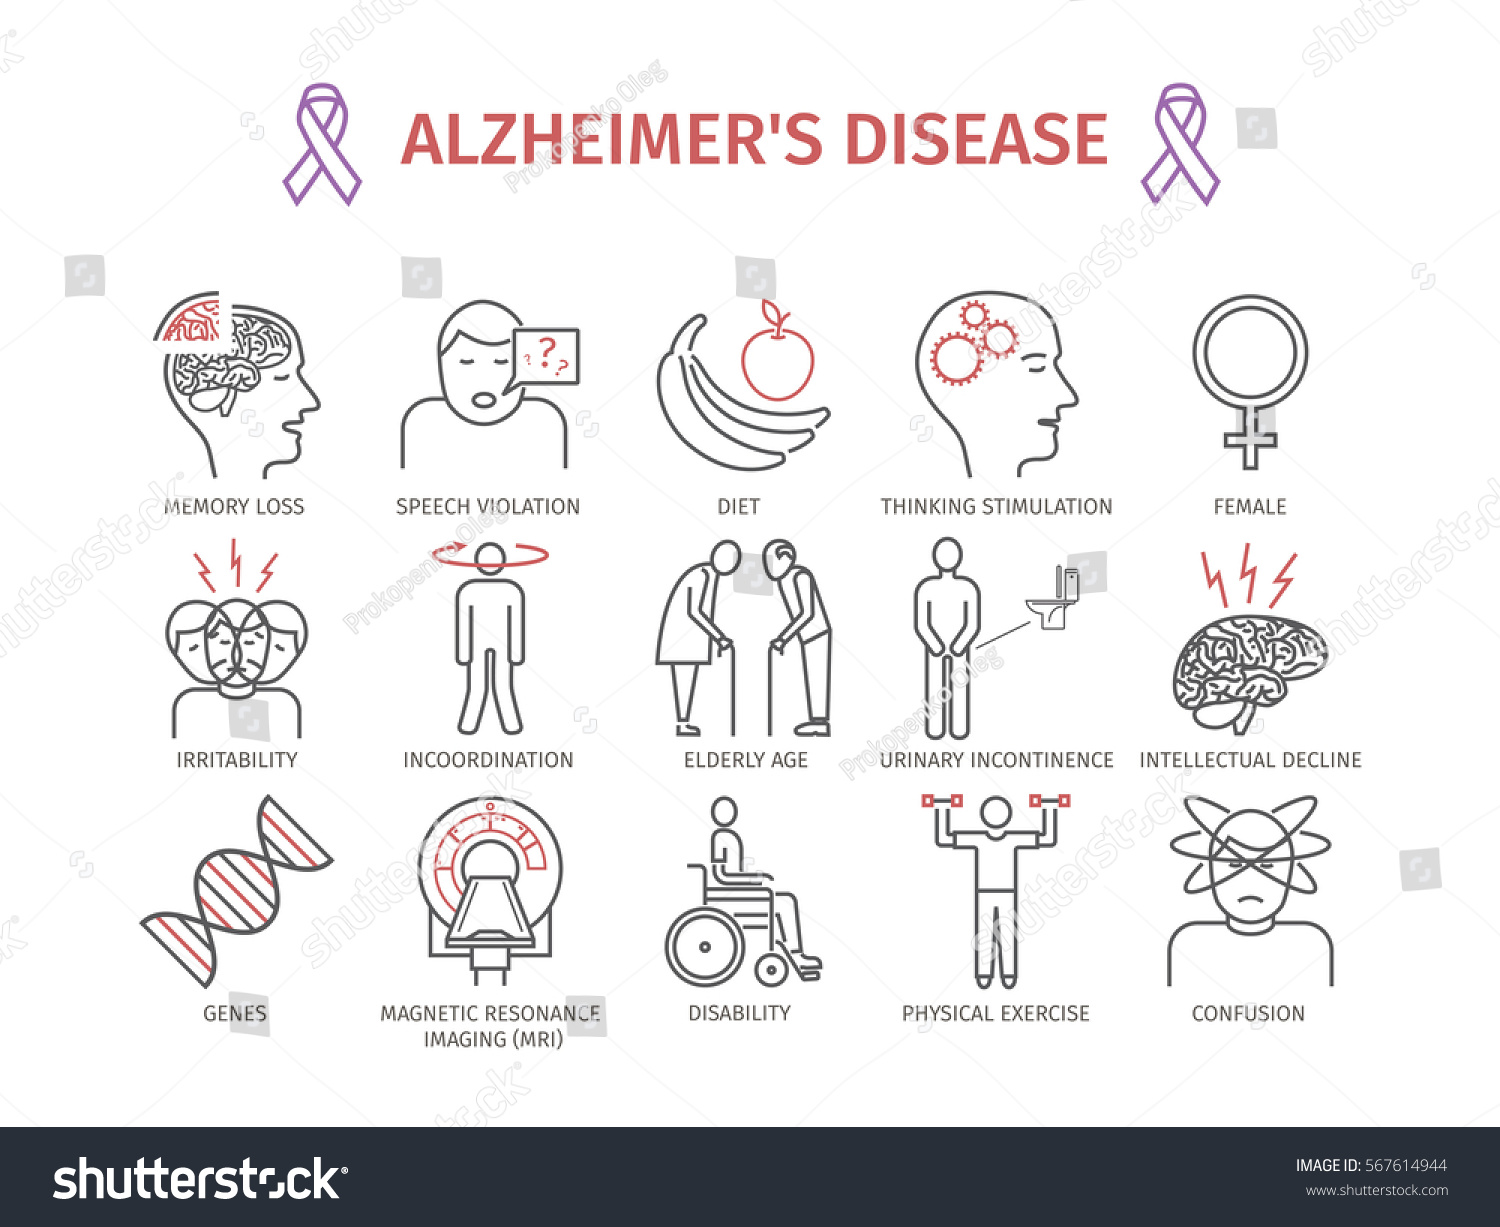 the signs and symptoms of alzheimers disease Although every case of alzheimer's disease is different, experts have identified common warning signs of the brain disease remember, alzheimer's disease is not a normal part of aging, and it is important to look for signs that might indicate alzheimer's disease versus basic forgetfulness or other conditions with alzheimer's.